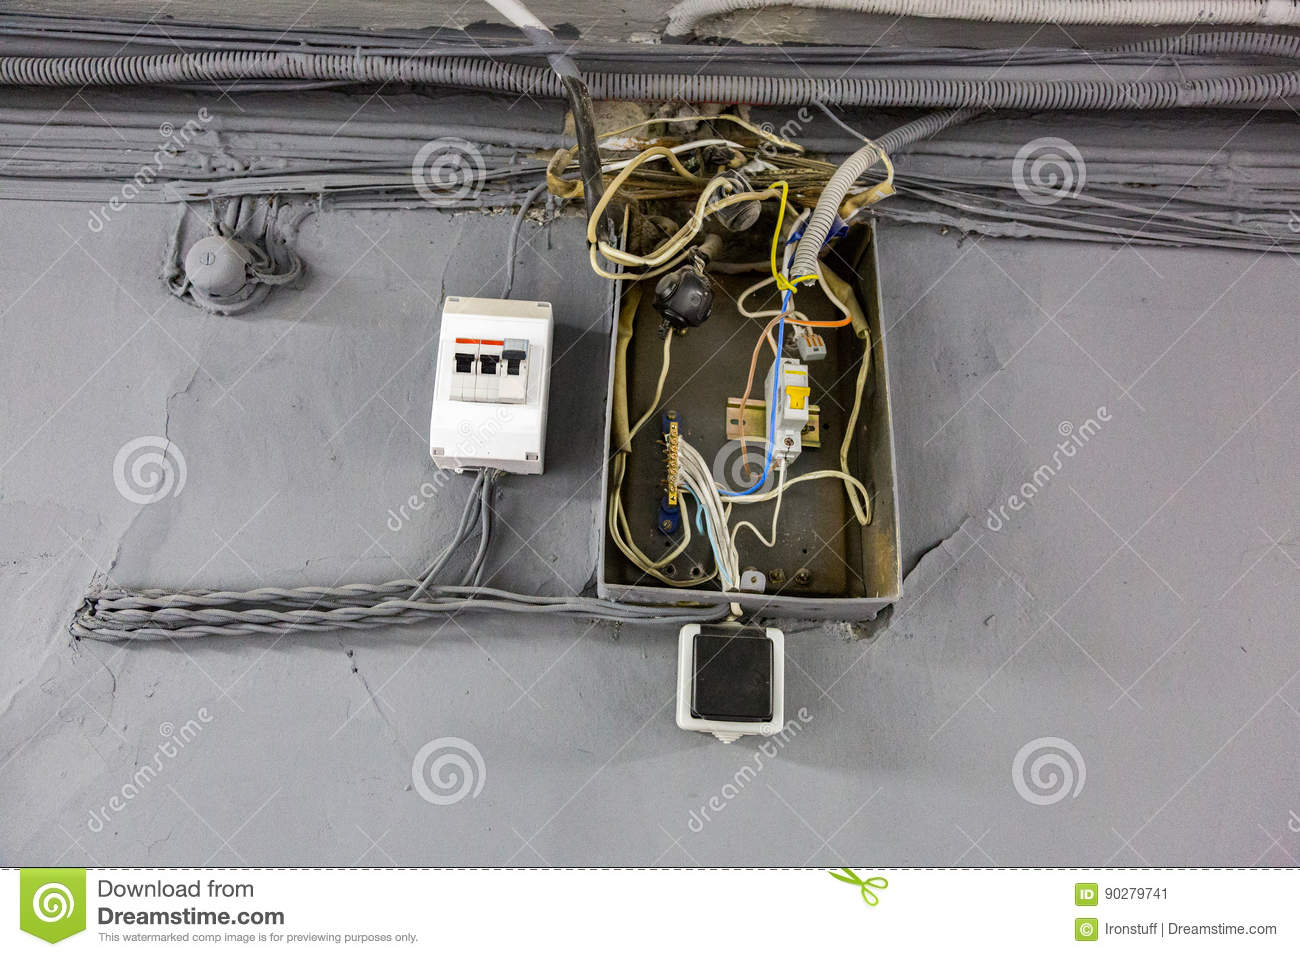 Old electrical wiring stock image. Image of dashboard - 90279741